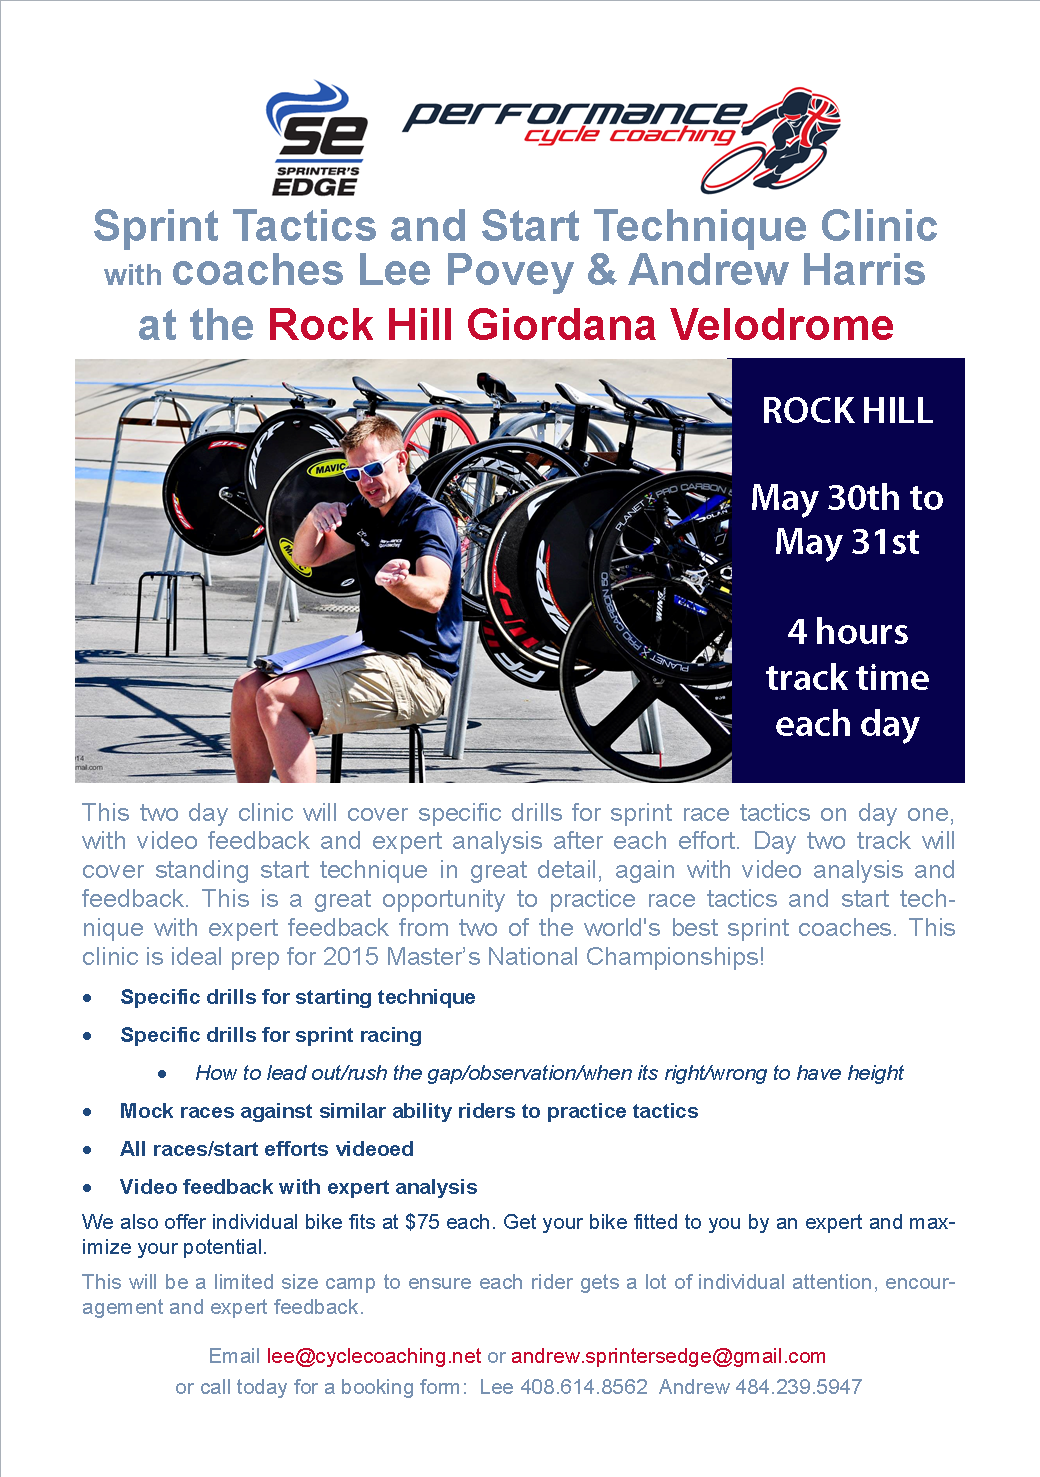 Rock Hill Clinic 30-31 May